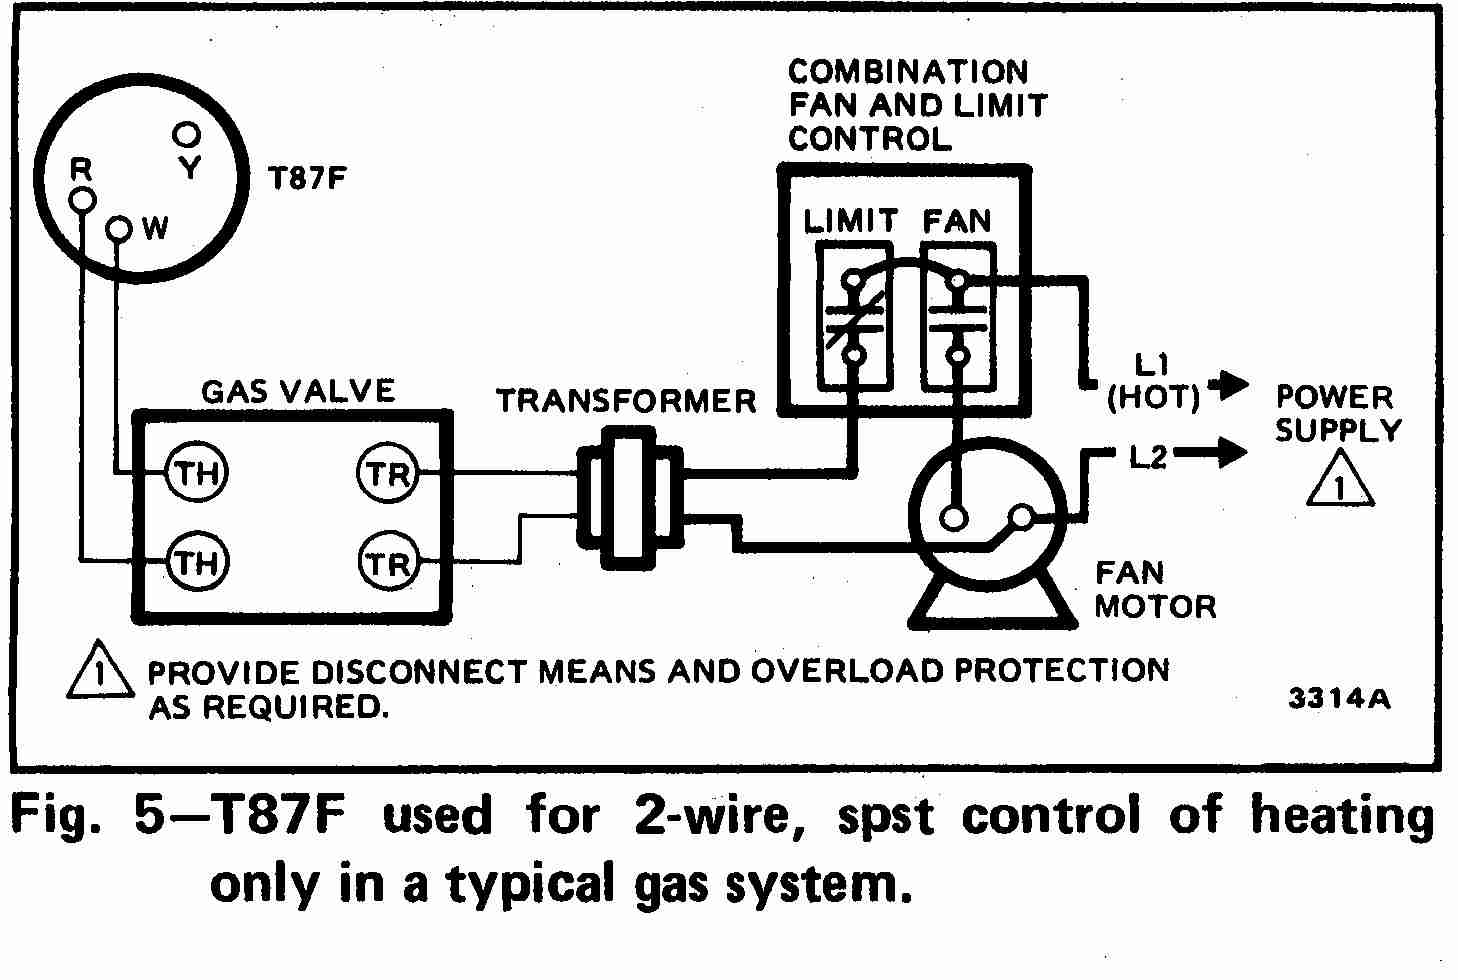 TT_T87F_0002_2Wg_DJF room thermostat wiring diagrams for hvac systems belimo thermostat wiring diagram at n-0.co